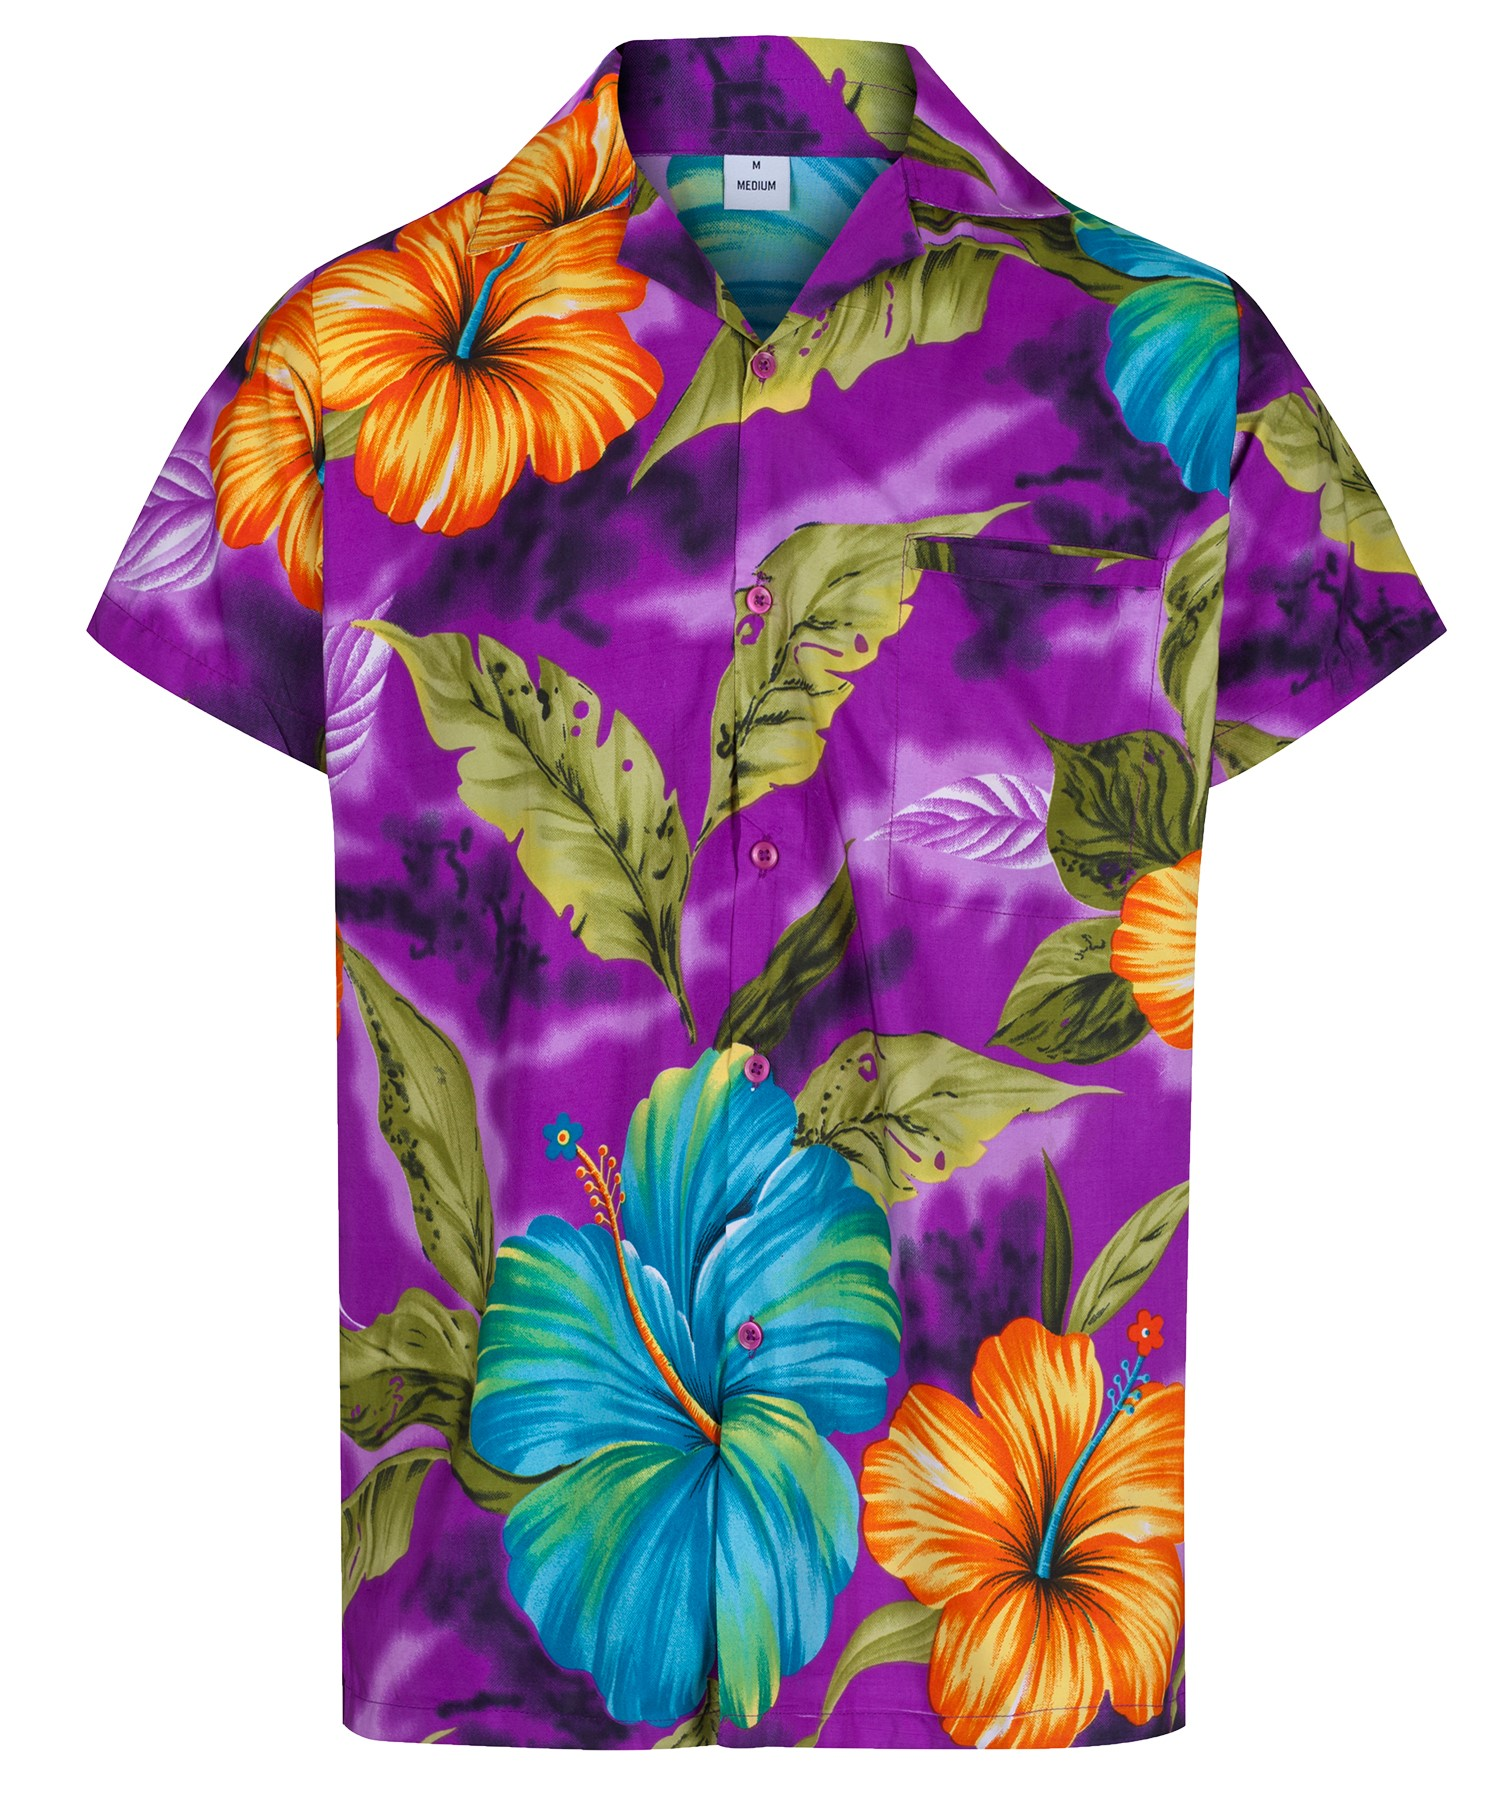 MENS HAWAIIAN SHIRT HIBISCUS THEMED PARTY HOLIDAY BEACH FANCY DRESS ...